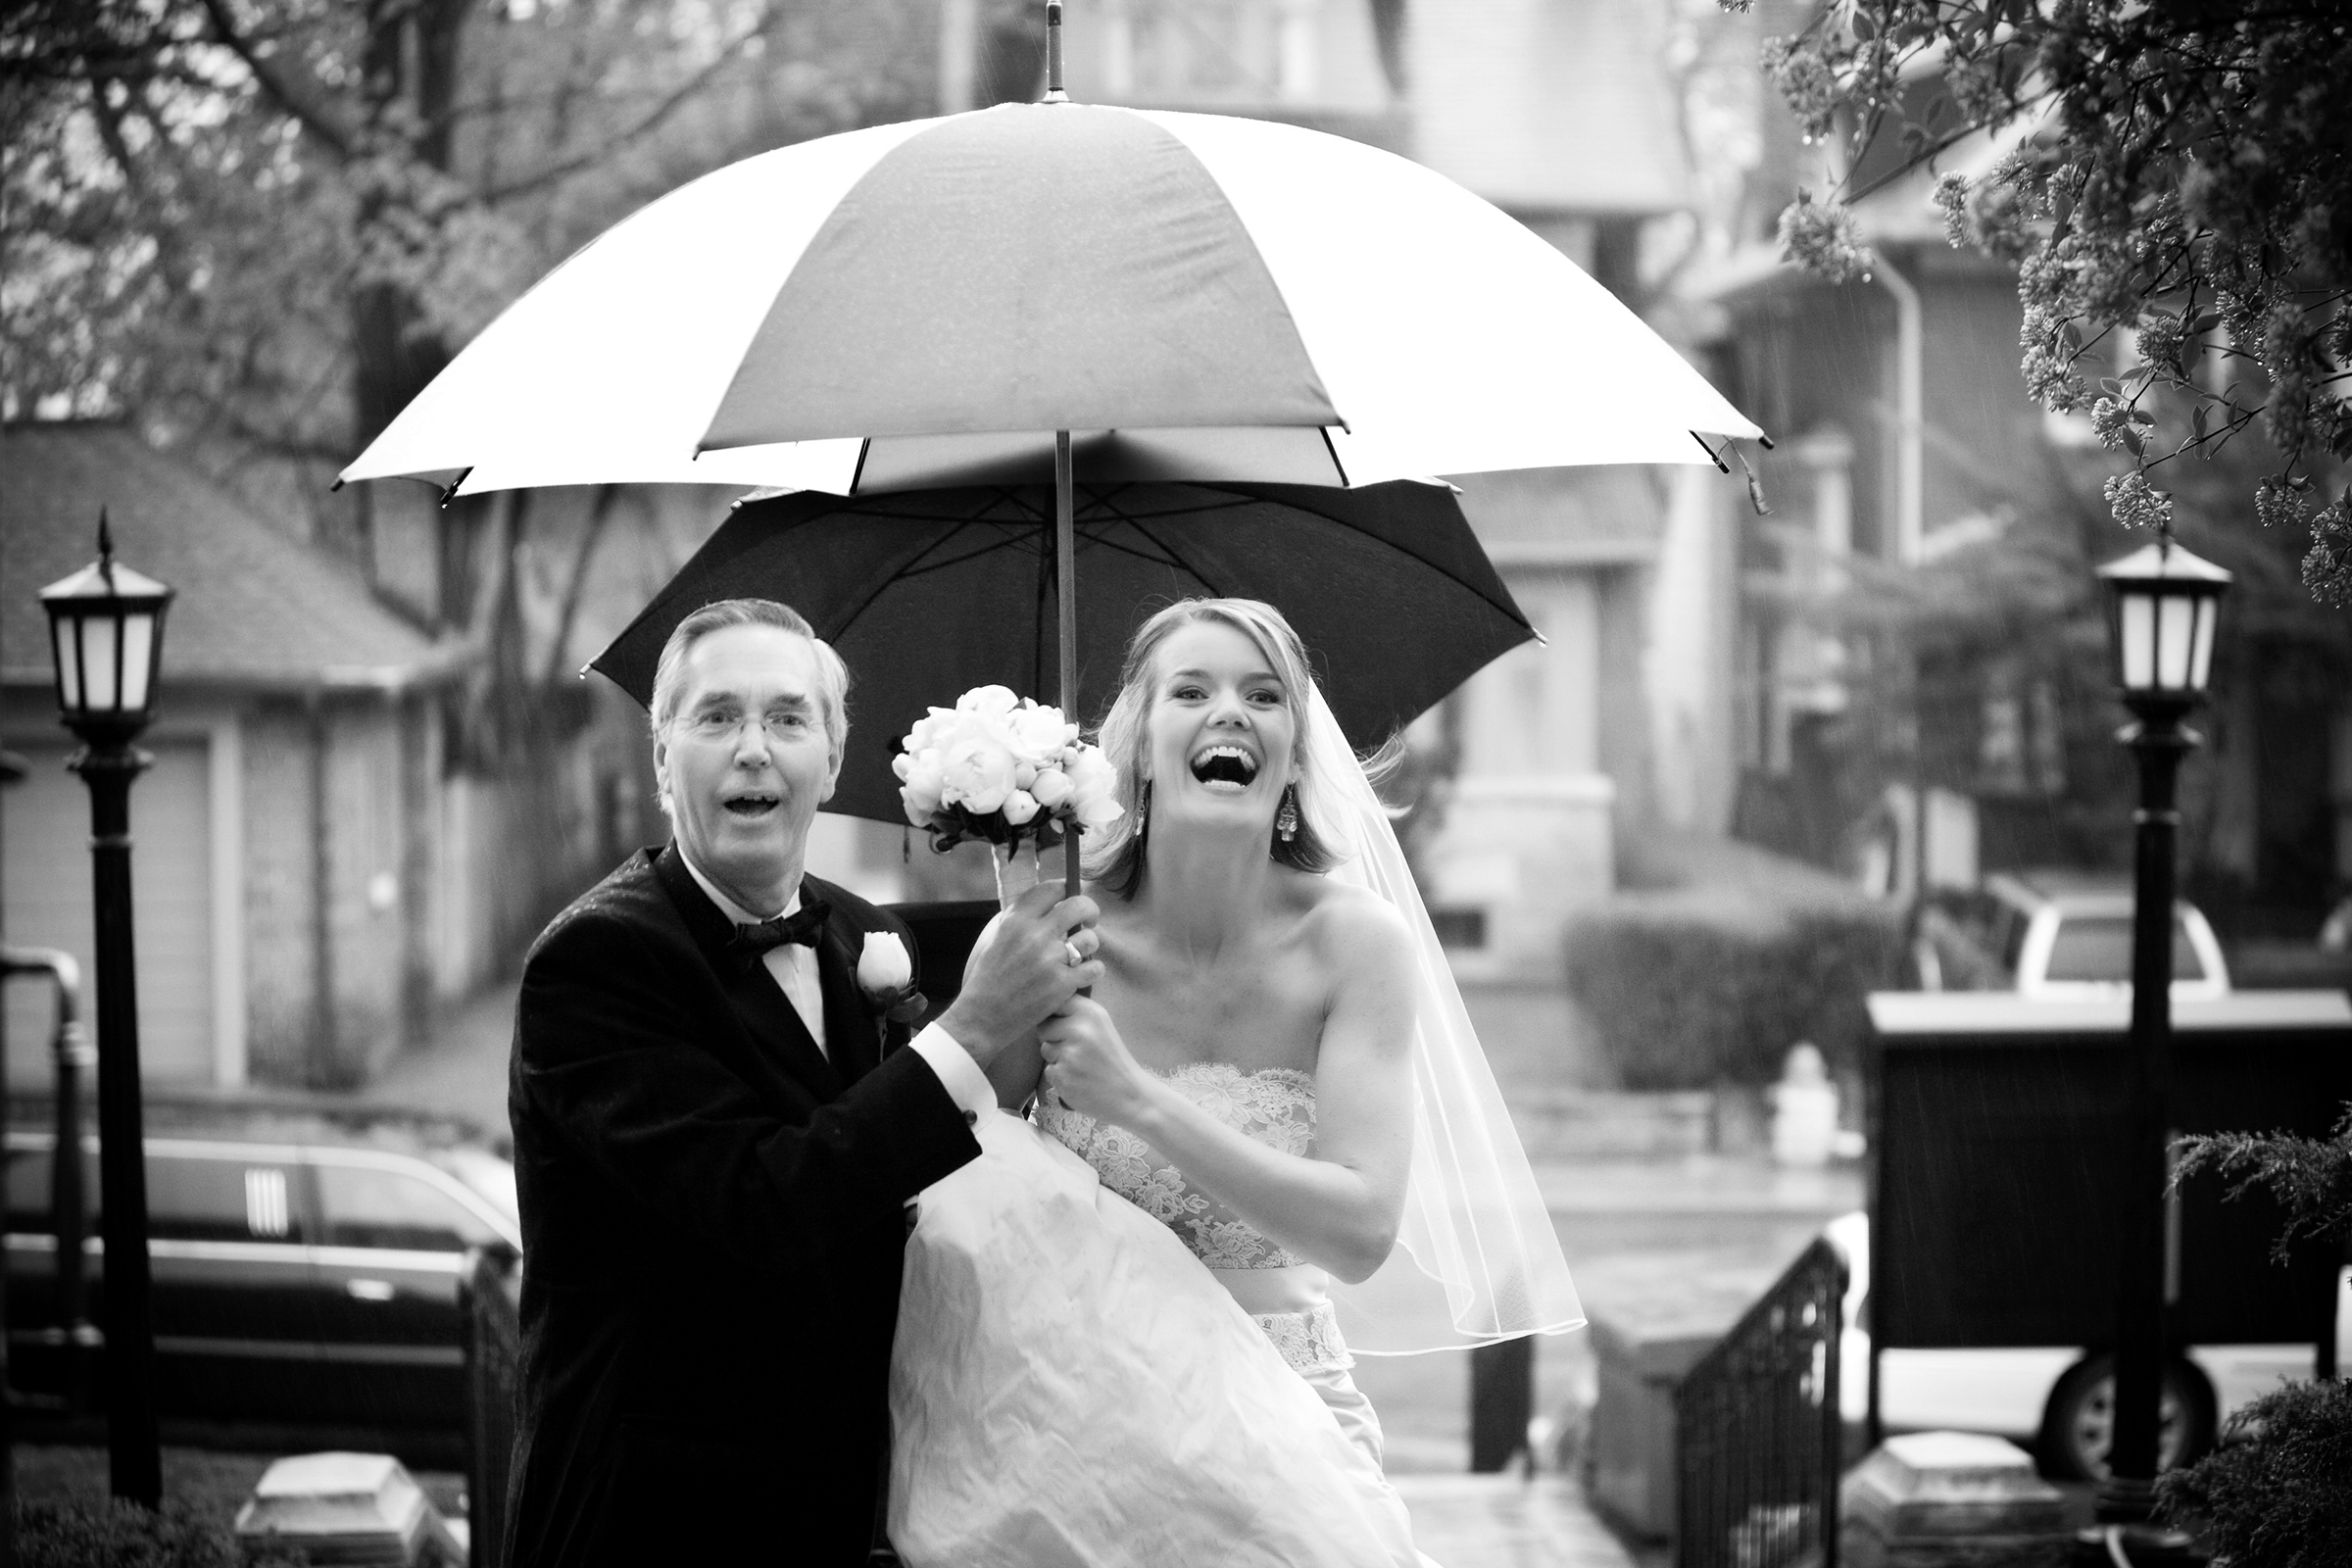 Under umbrellas bride and father approach - photo by Storey Wilkins Photography